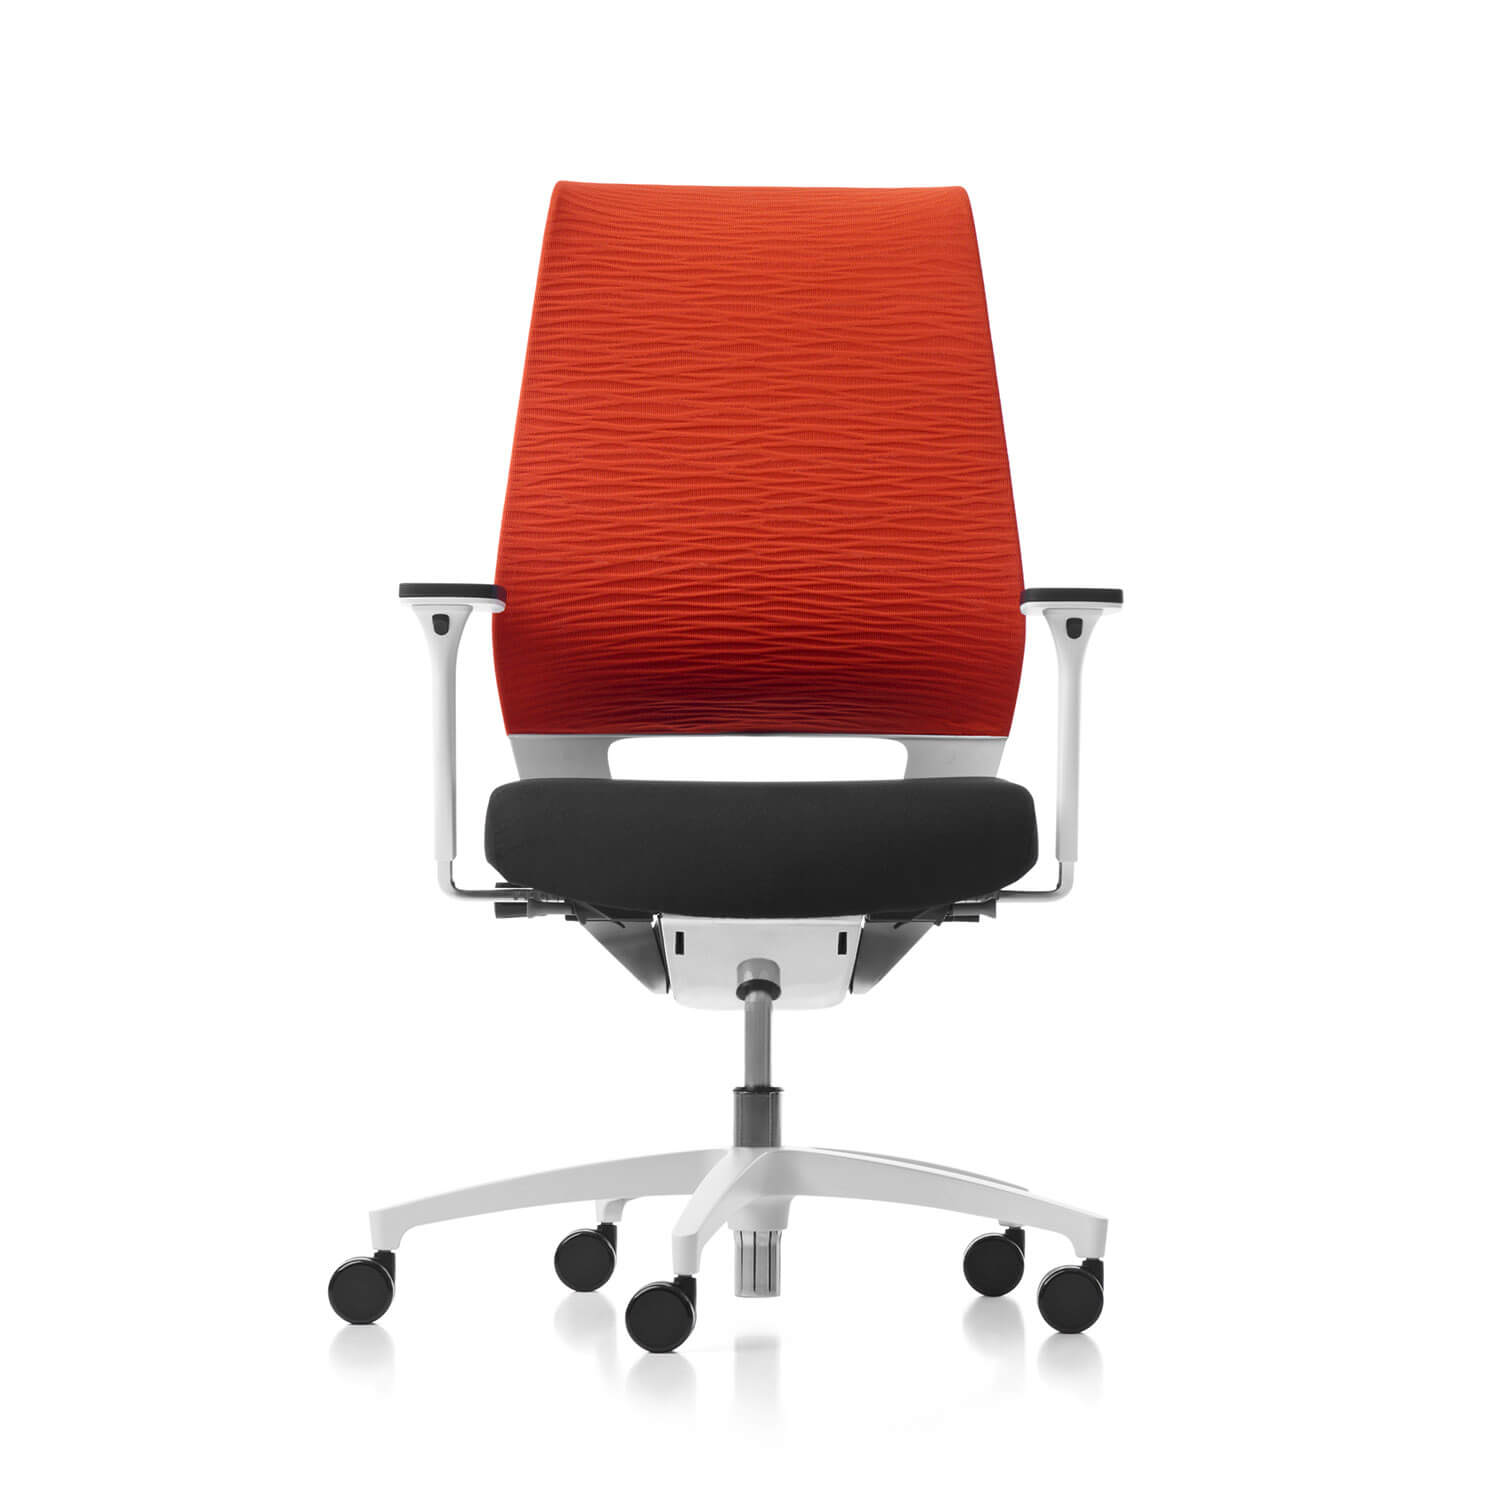 X-Code_Office Chairs5